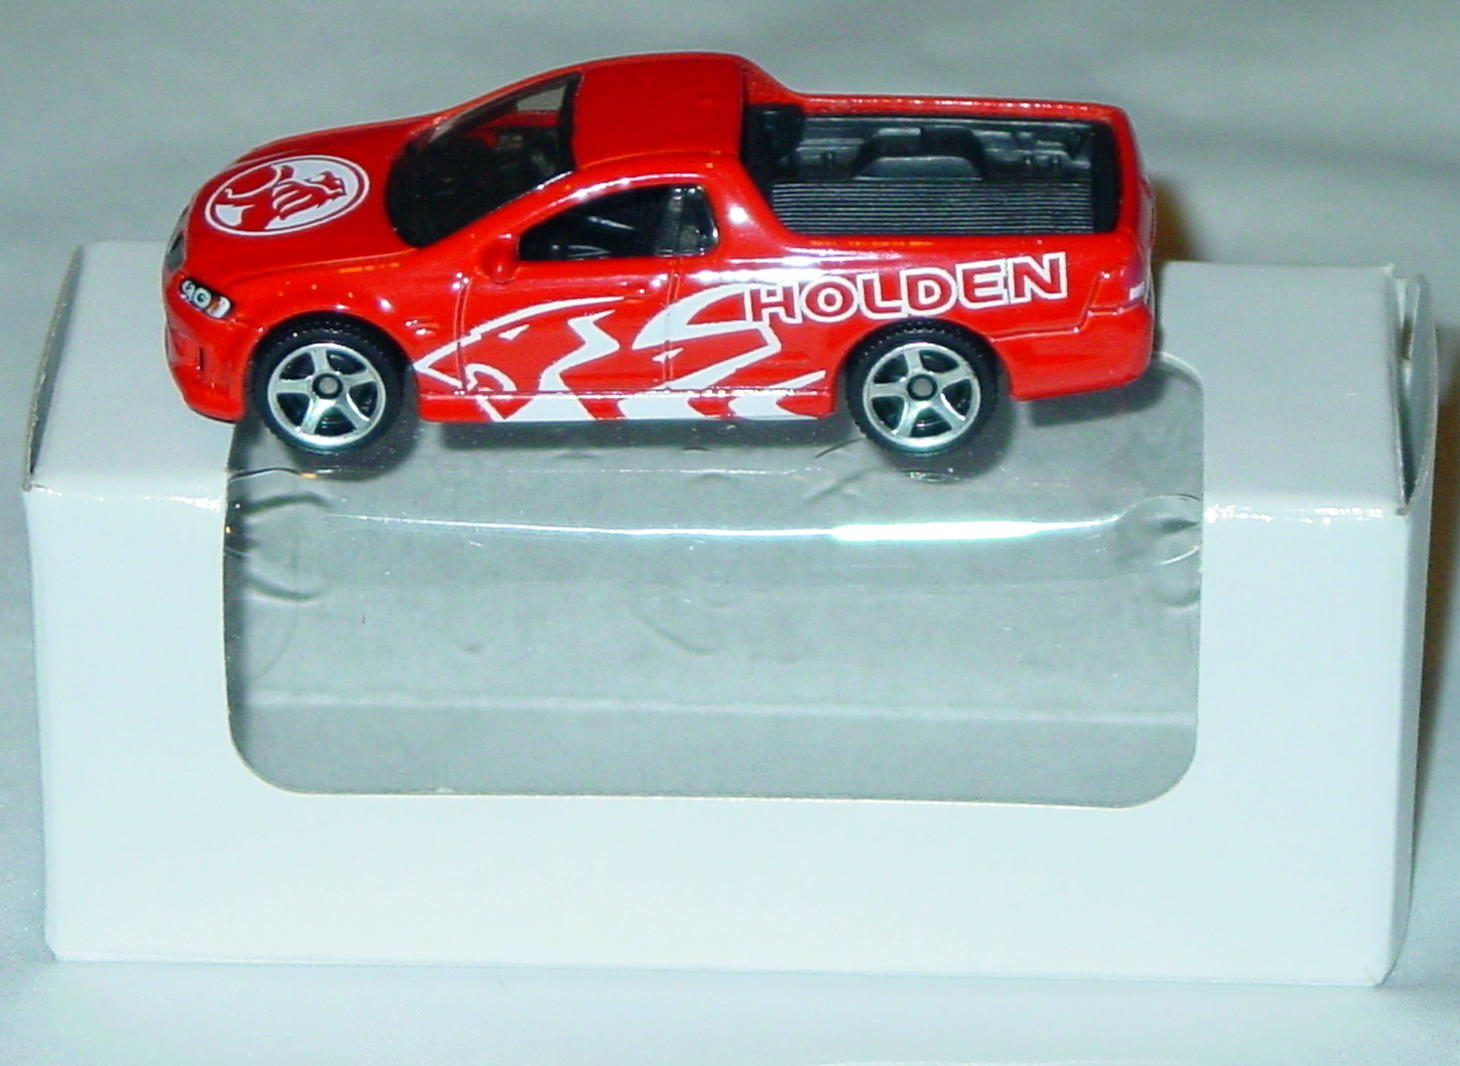 ASAP-CCI 02 P - MODELoftheMONTH 9/12  Holden Ute red-Orange Racing